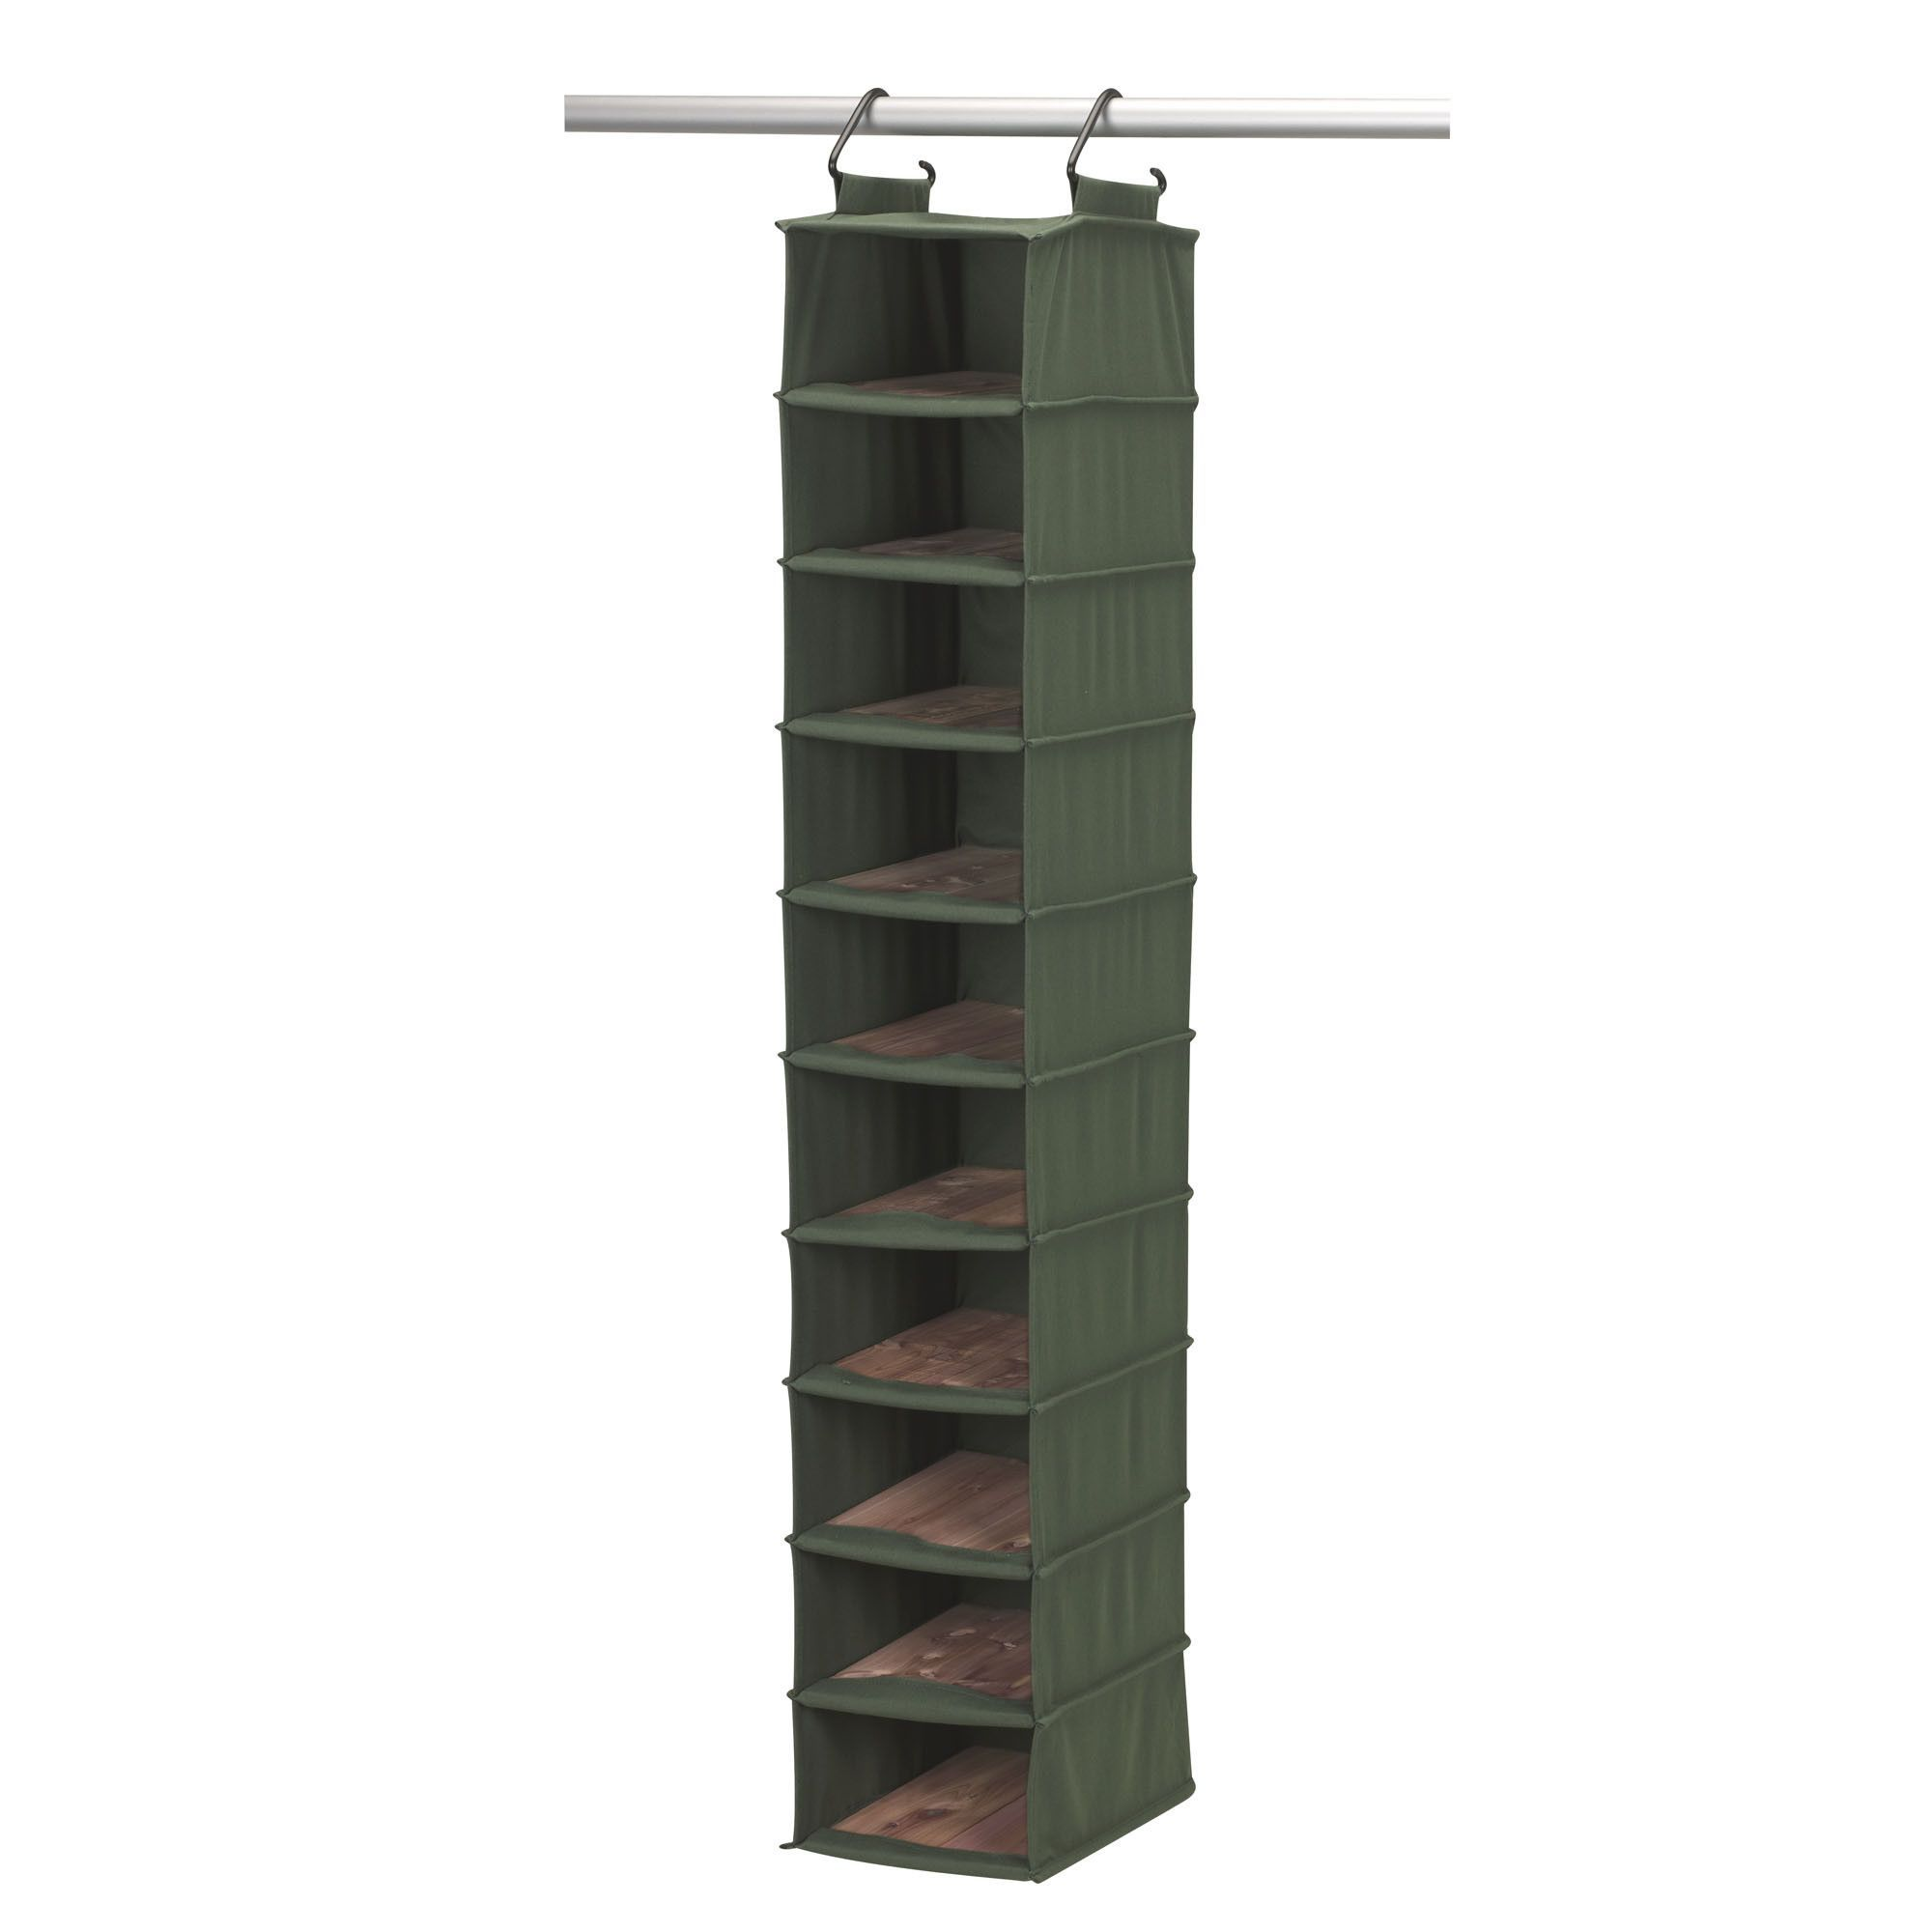 Cedarstow shelf hanging shoe organizer forest green products